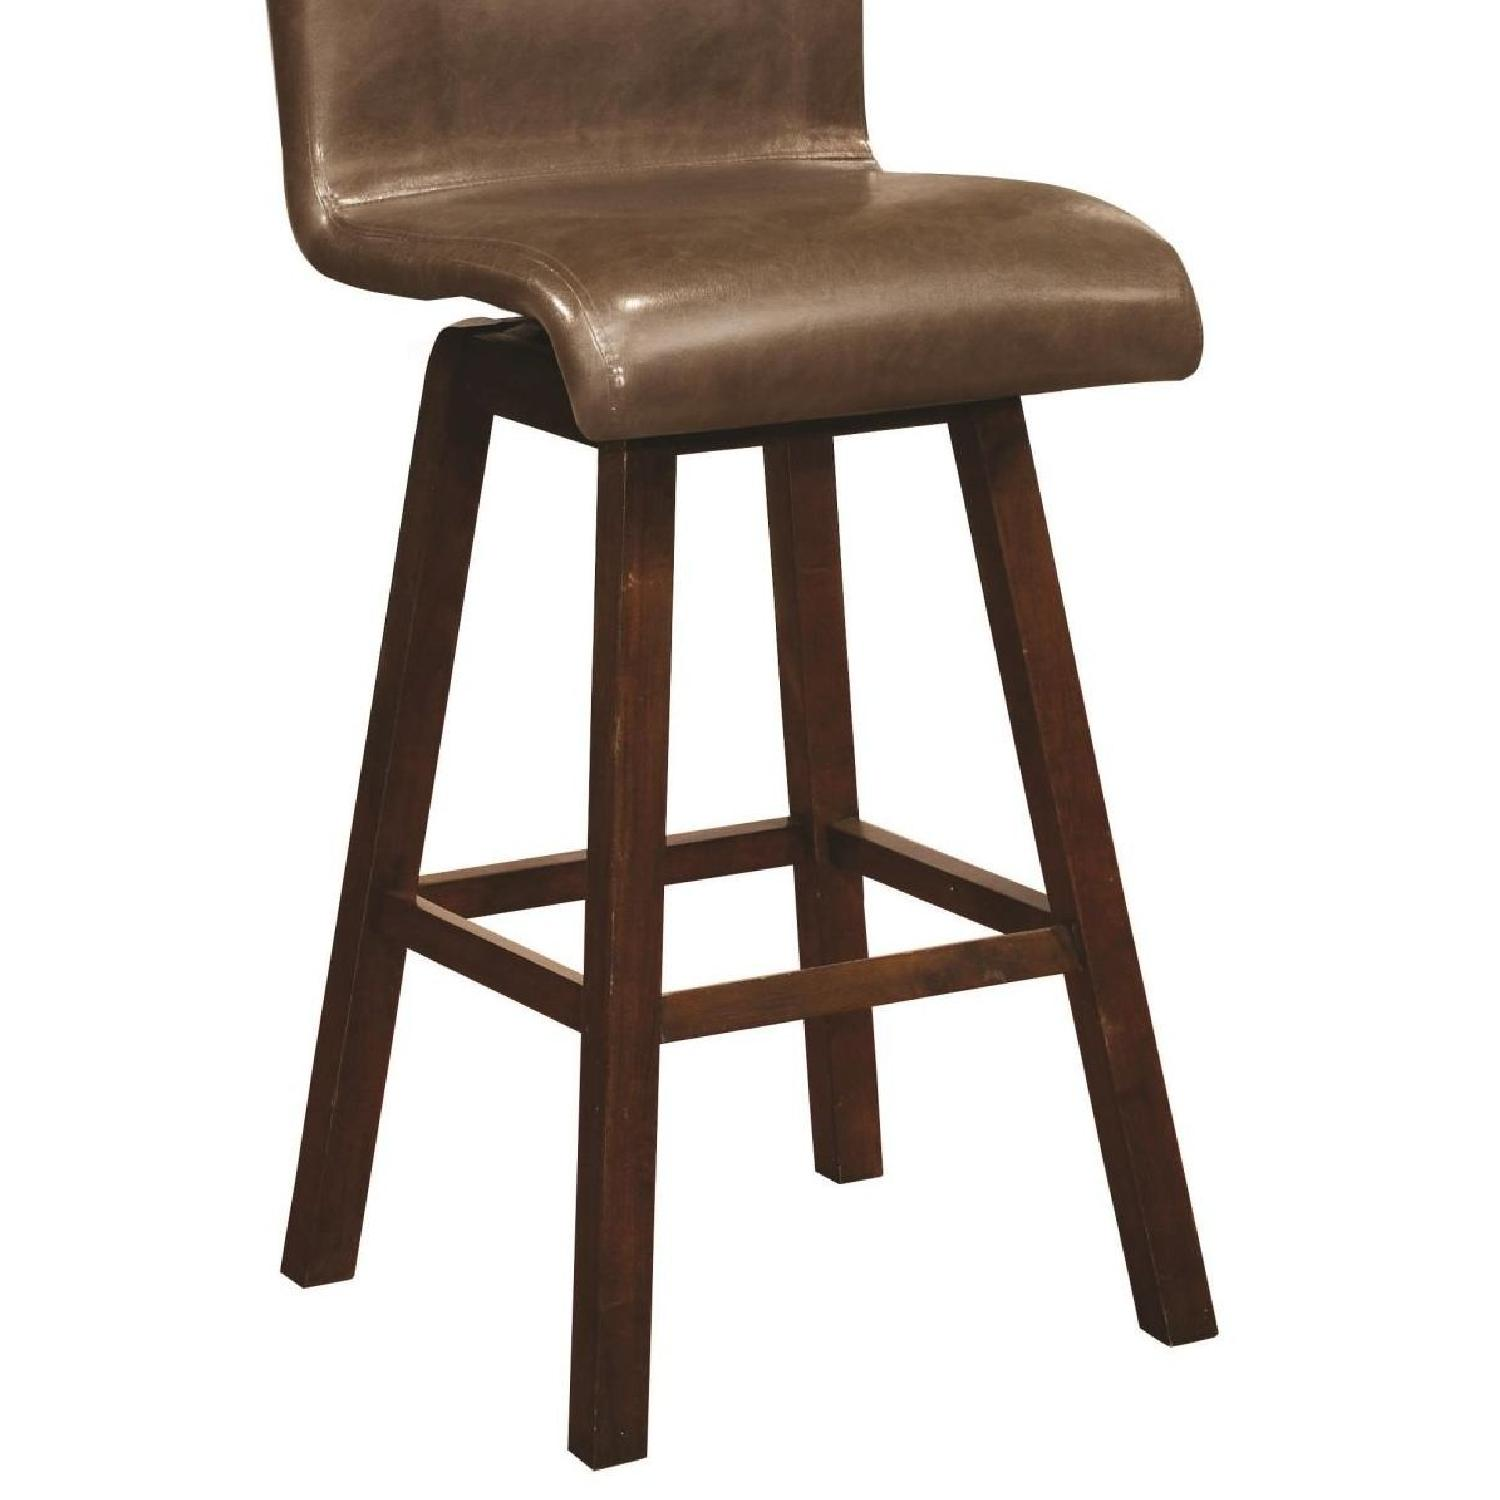 Modern Upholstered Barstool w/ Brown Cushions - image-2